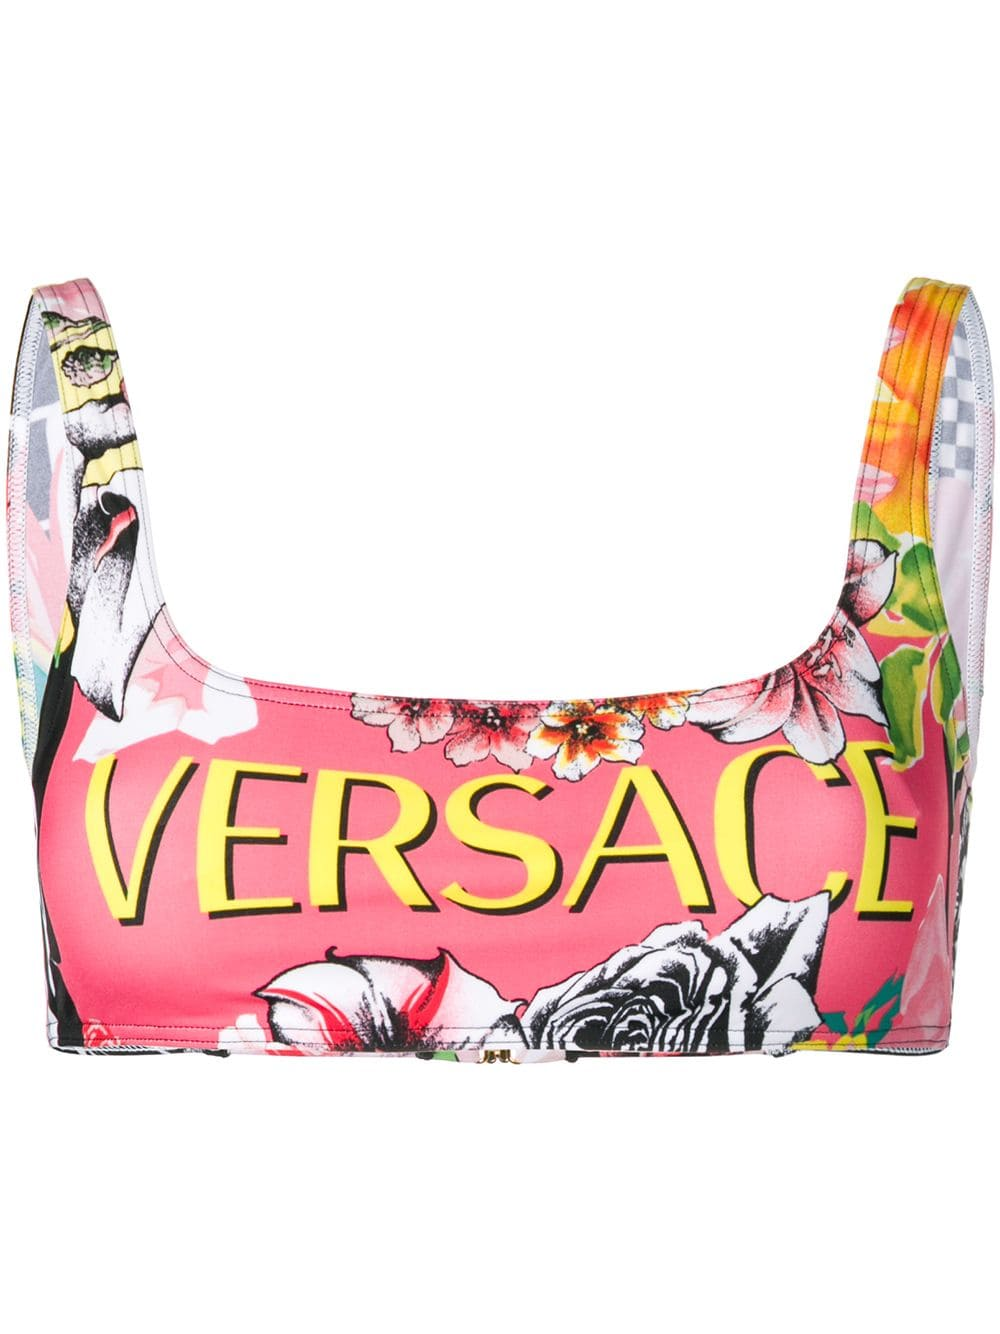 12069c320b Versace Floral Logo Bikini Top in 2019 | Products | Floral logo ...